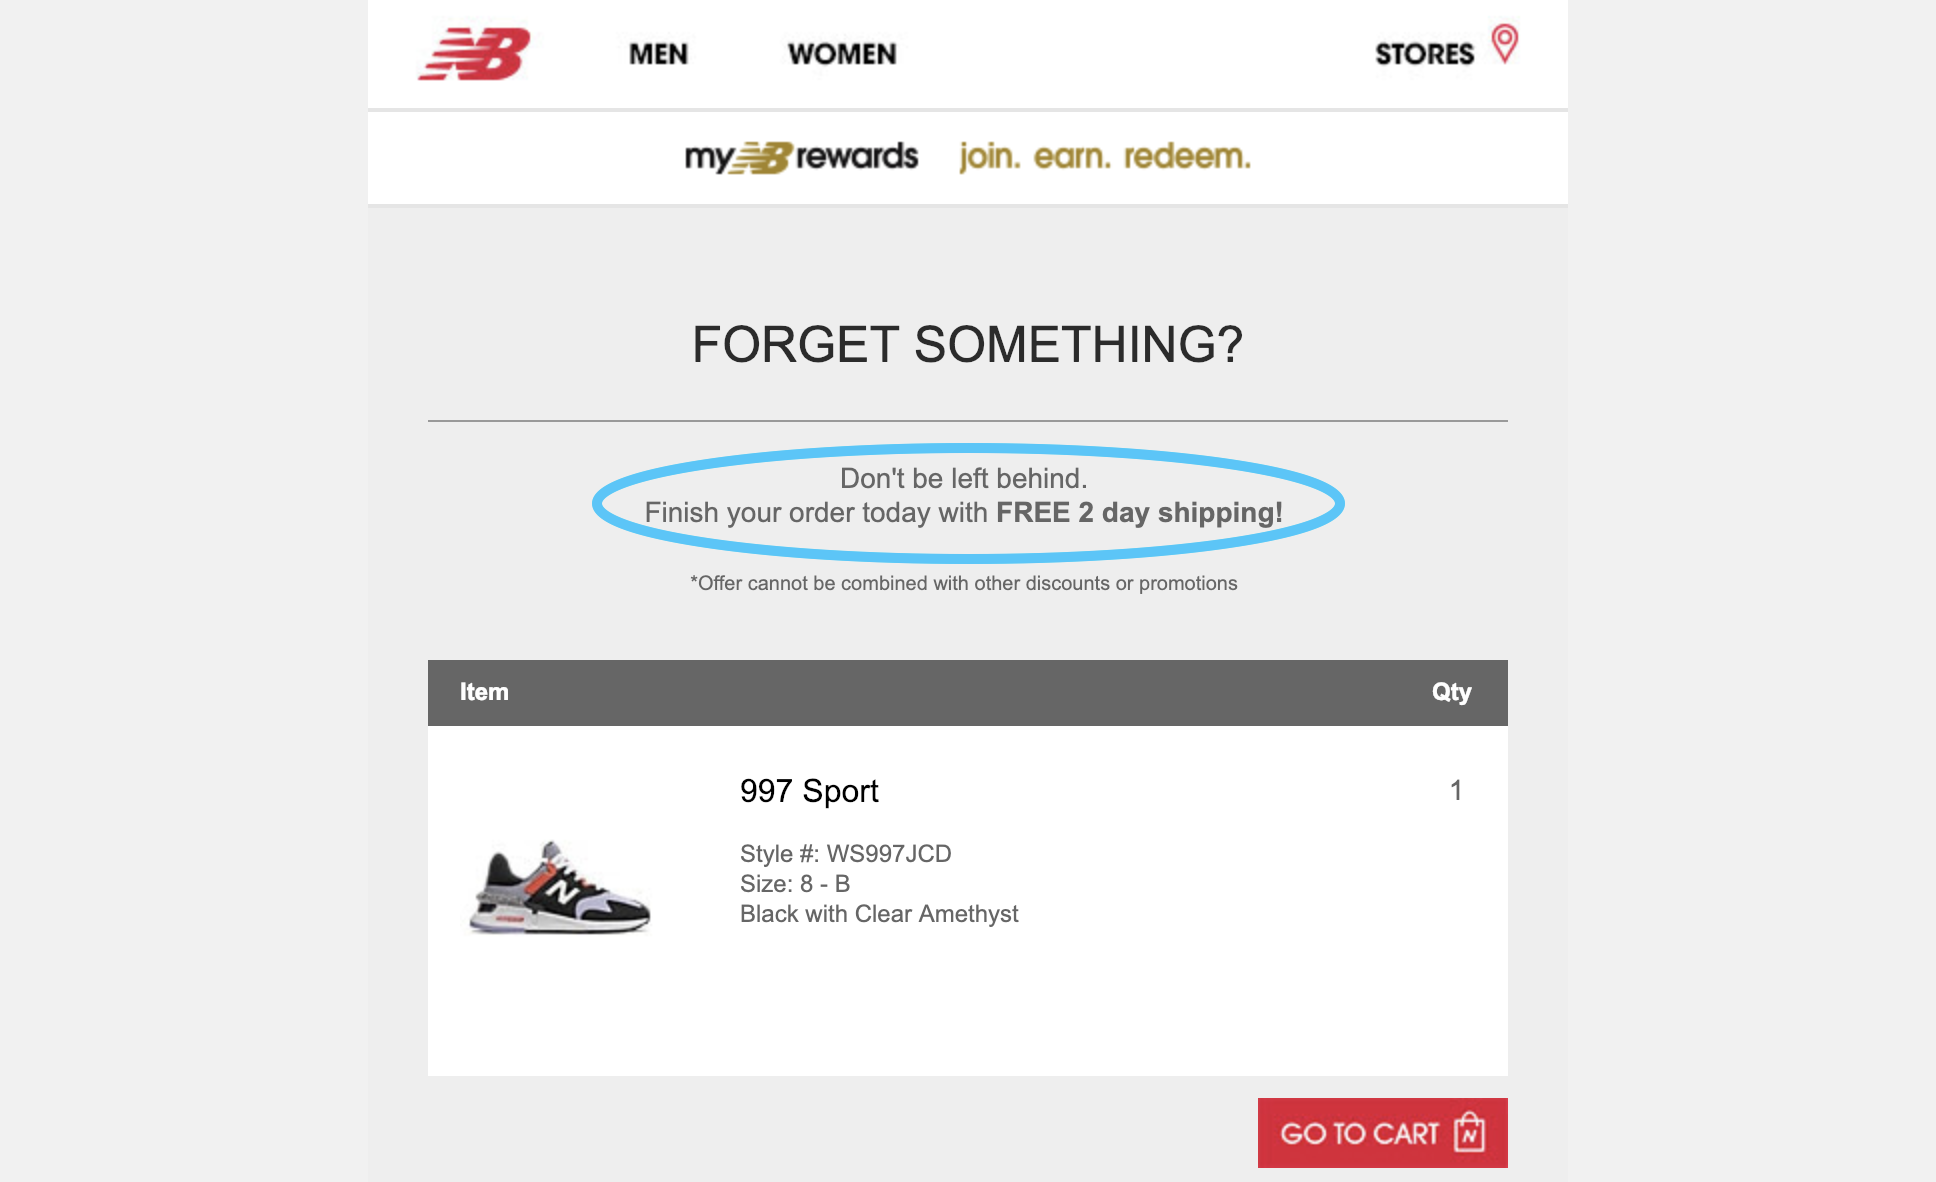 new-balance-abandoned-cart-second-reminder-email